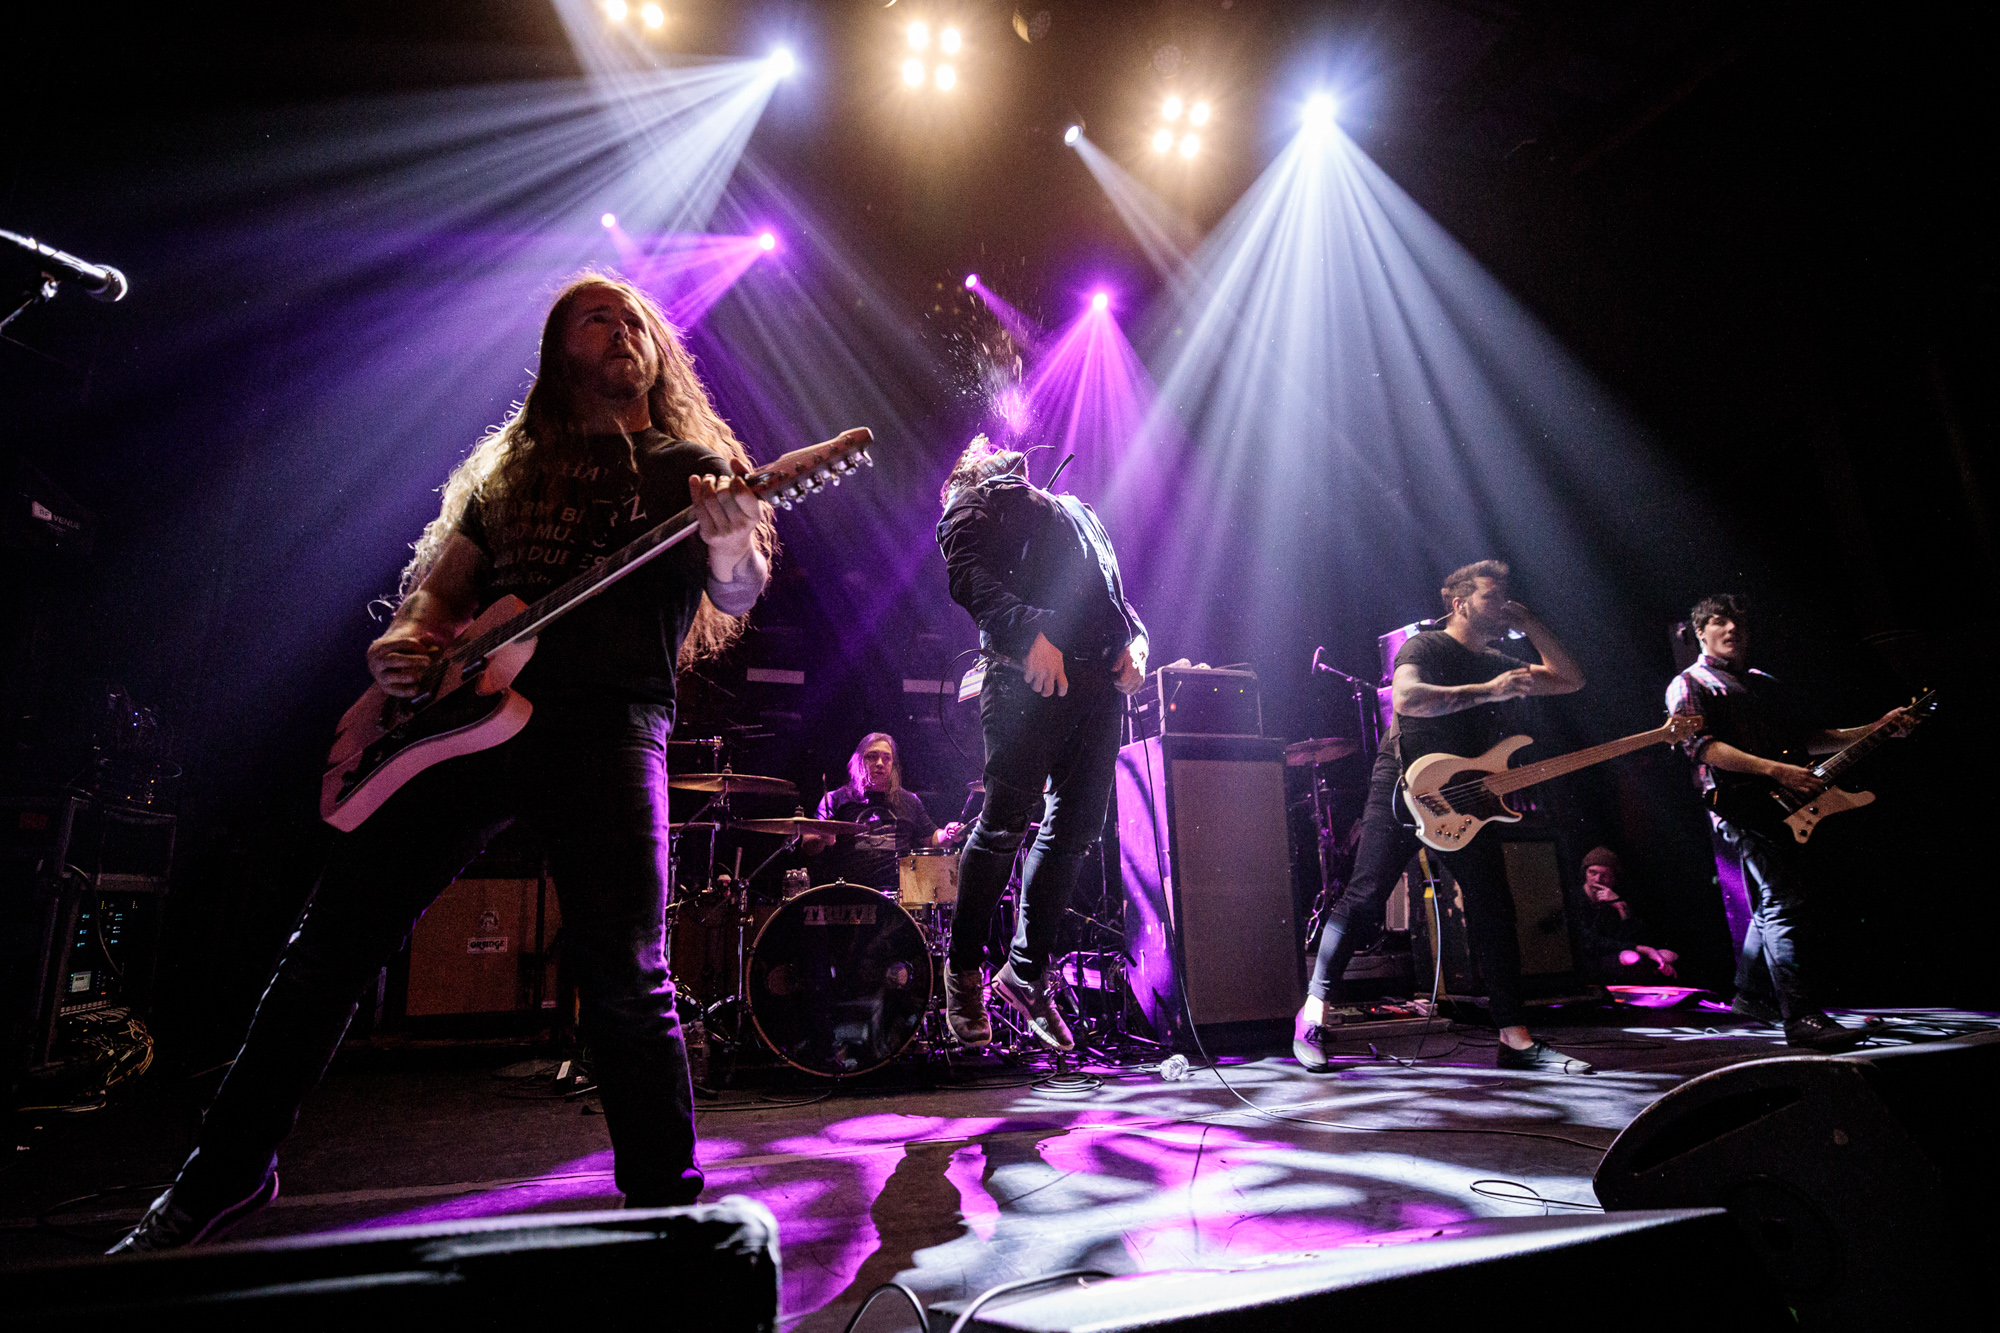 Norma Jean at the Gramercy Theatre November 13, 2019